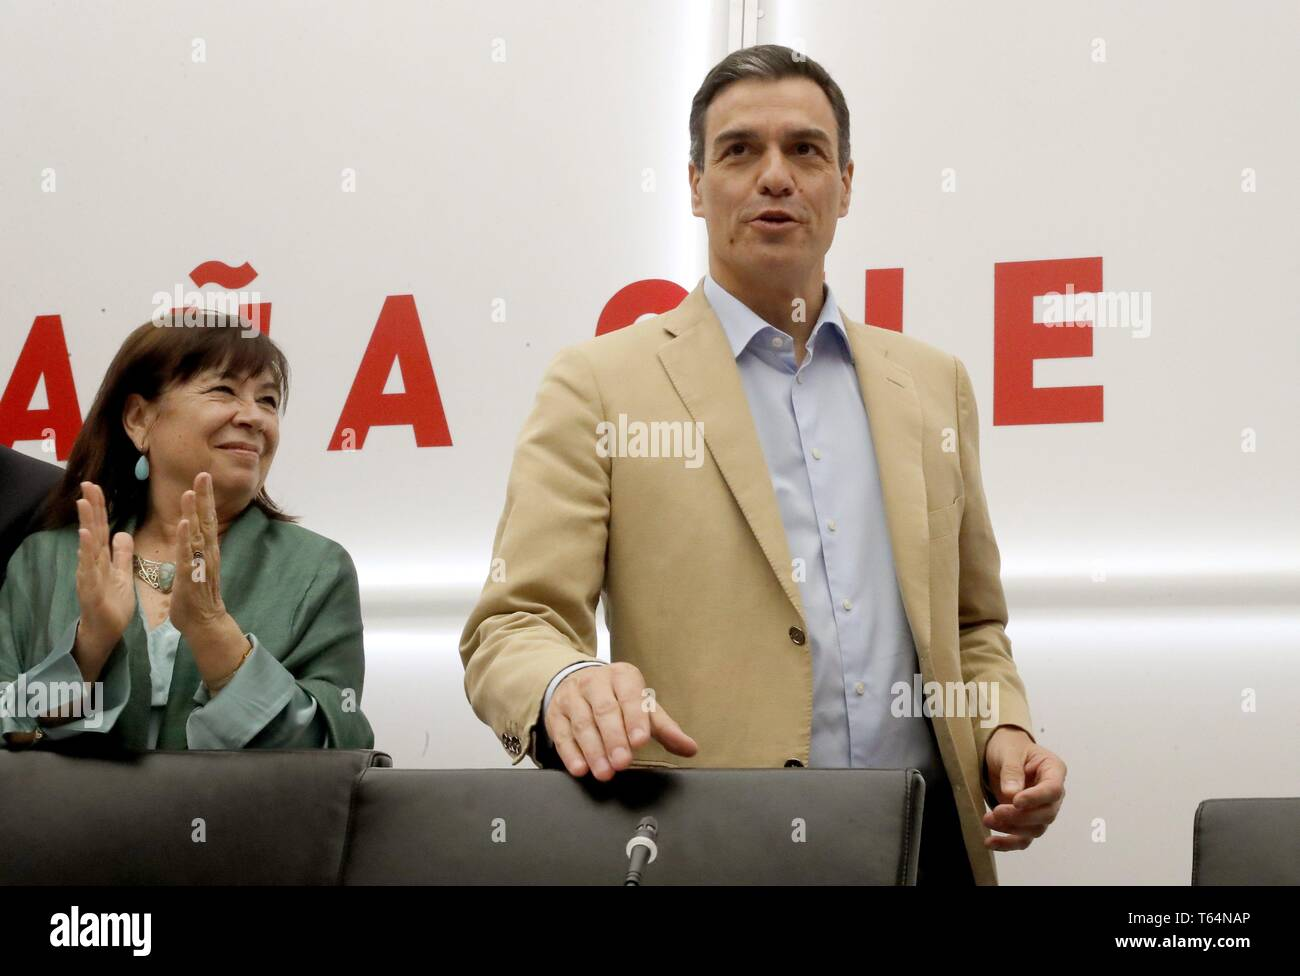 Madrid, Spain. 29th Apr, 2019. Spanish acting Prime Minister and Secretary-General of PSOE, Pedro Sanchez (R), attends a meeting of PSOE's executive board, in Madrid, Spain, 29 April 2019. Sanchez and his Spanish Workers' Socialist Party won 123 of the 350 seats that conform the Parliament's Lower Chamber in the 28A general elections. Credit: Zipi/EFE/Alamy Live News - Stock Image